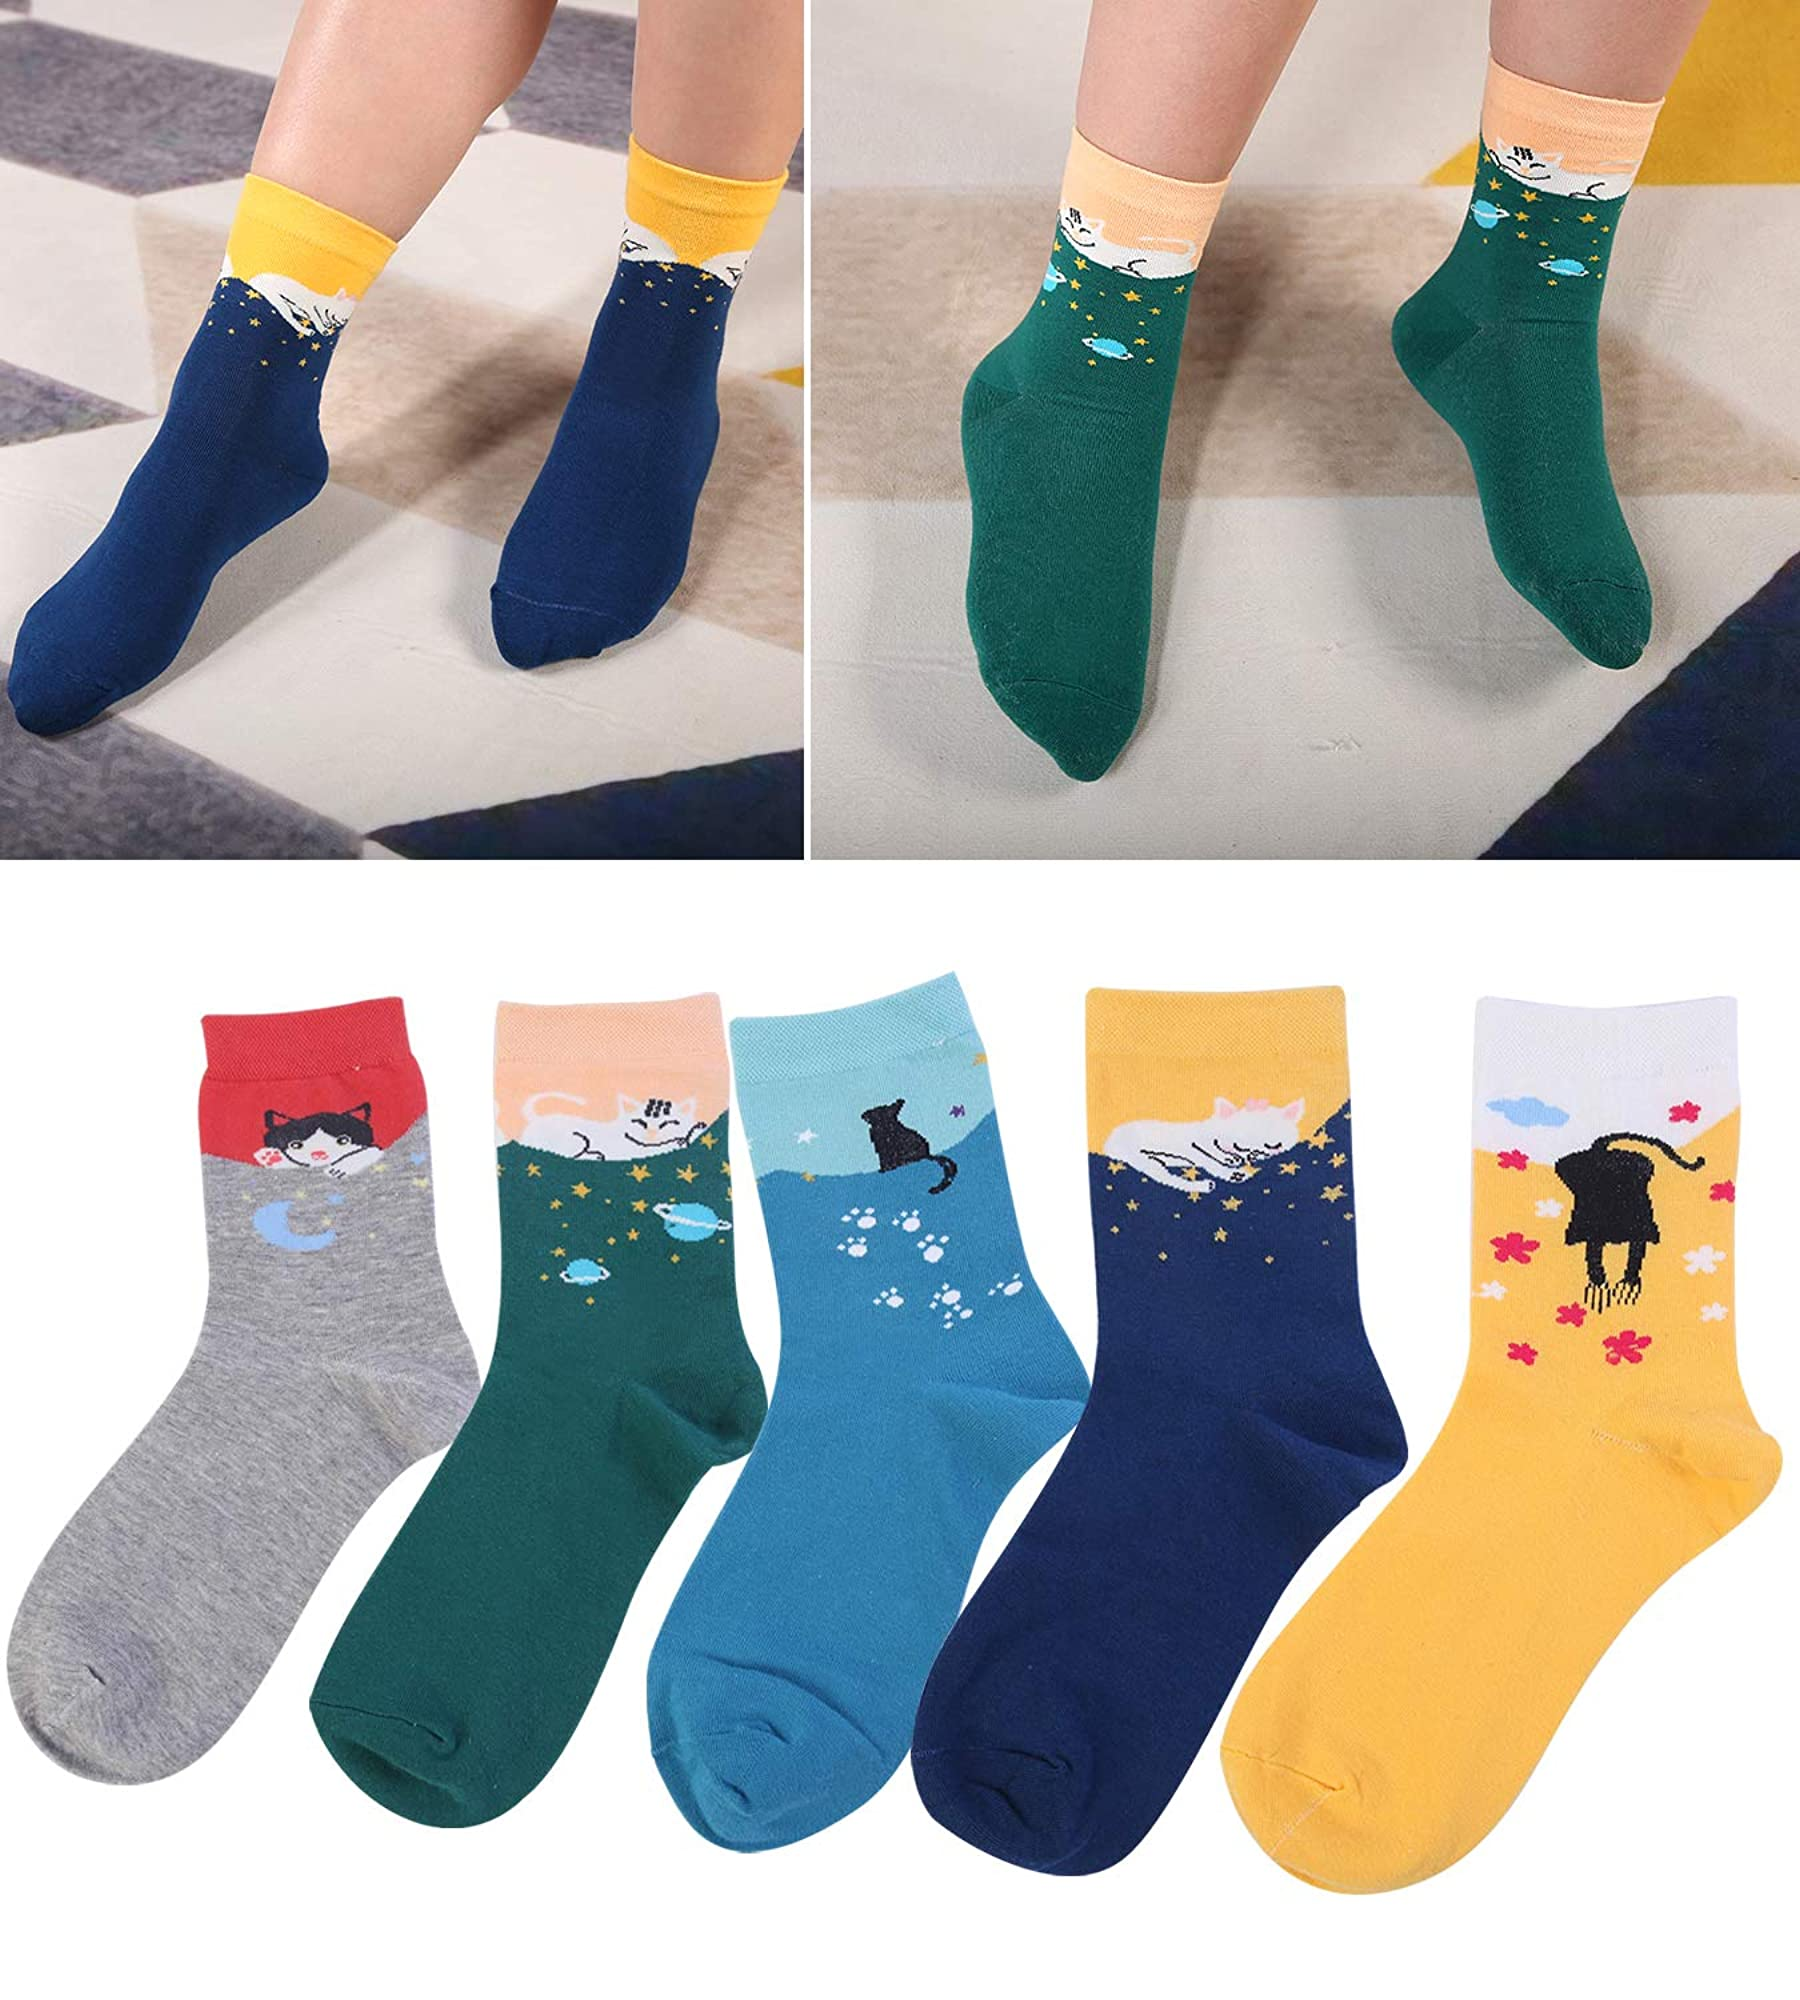 Women's Funny Funky Design Novelty Socks